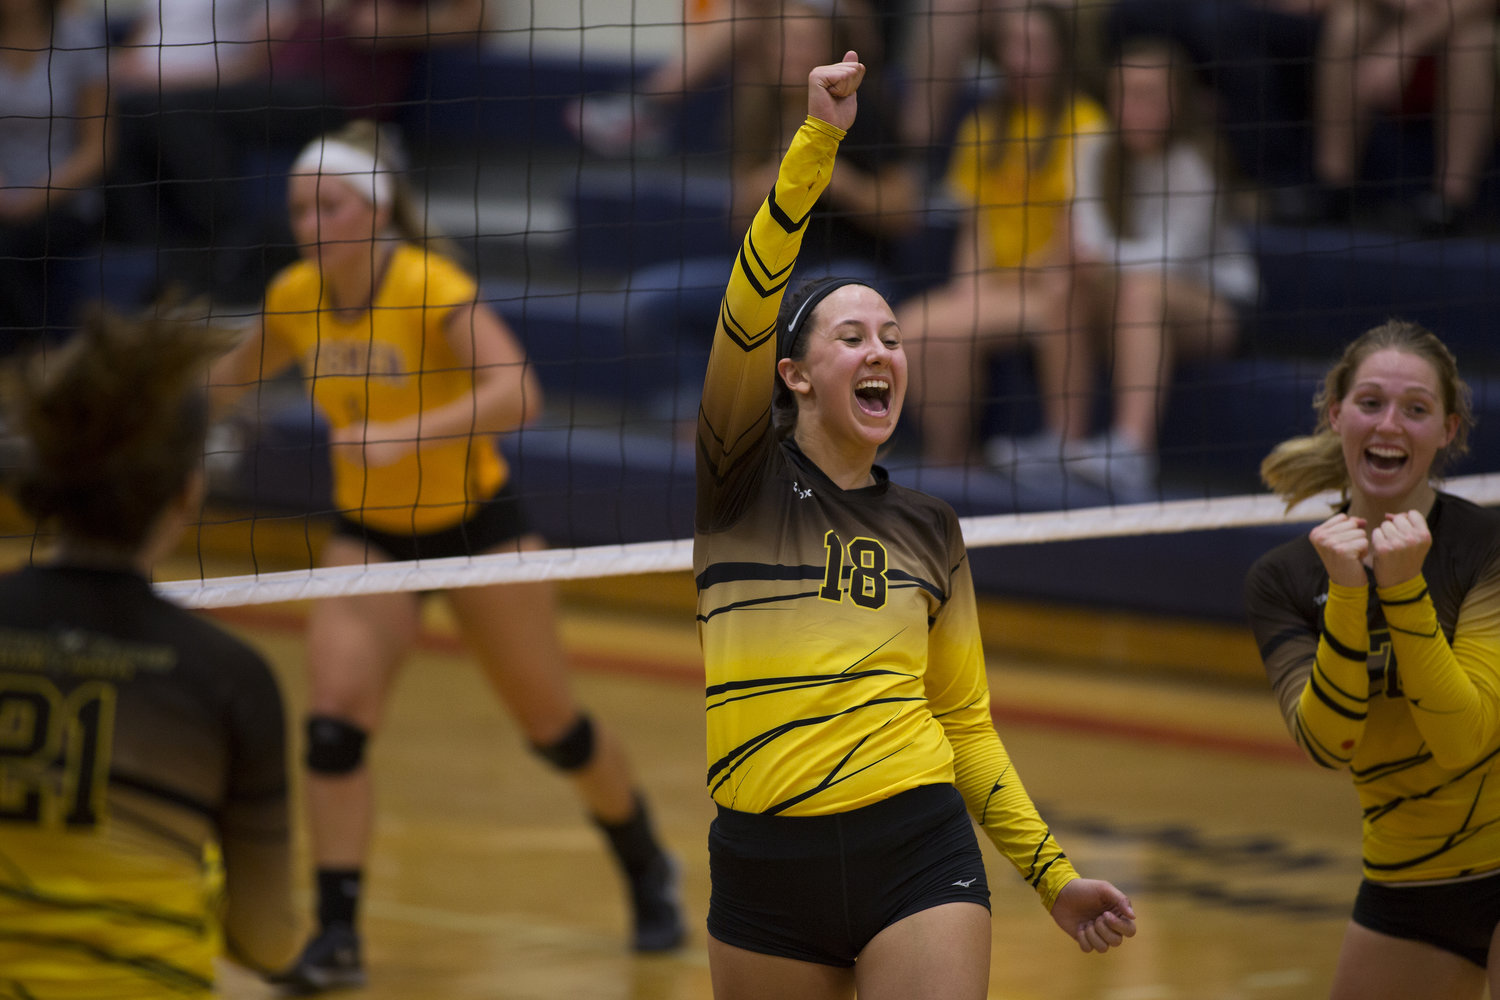 Nikolette Scruggs (18) of Baldwin Wallace University reacts after winning a point against St. John Fisher. on Friday, Sept. 16, 2016 at the St John Fisher College Invitational at St Joh Fisher College in Rochester, N.Y. Baldwin Wallace University defeated St. John Fisher 3-0.